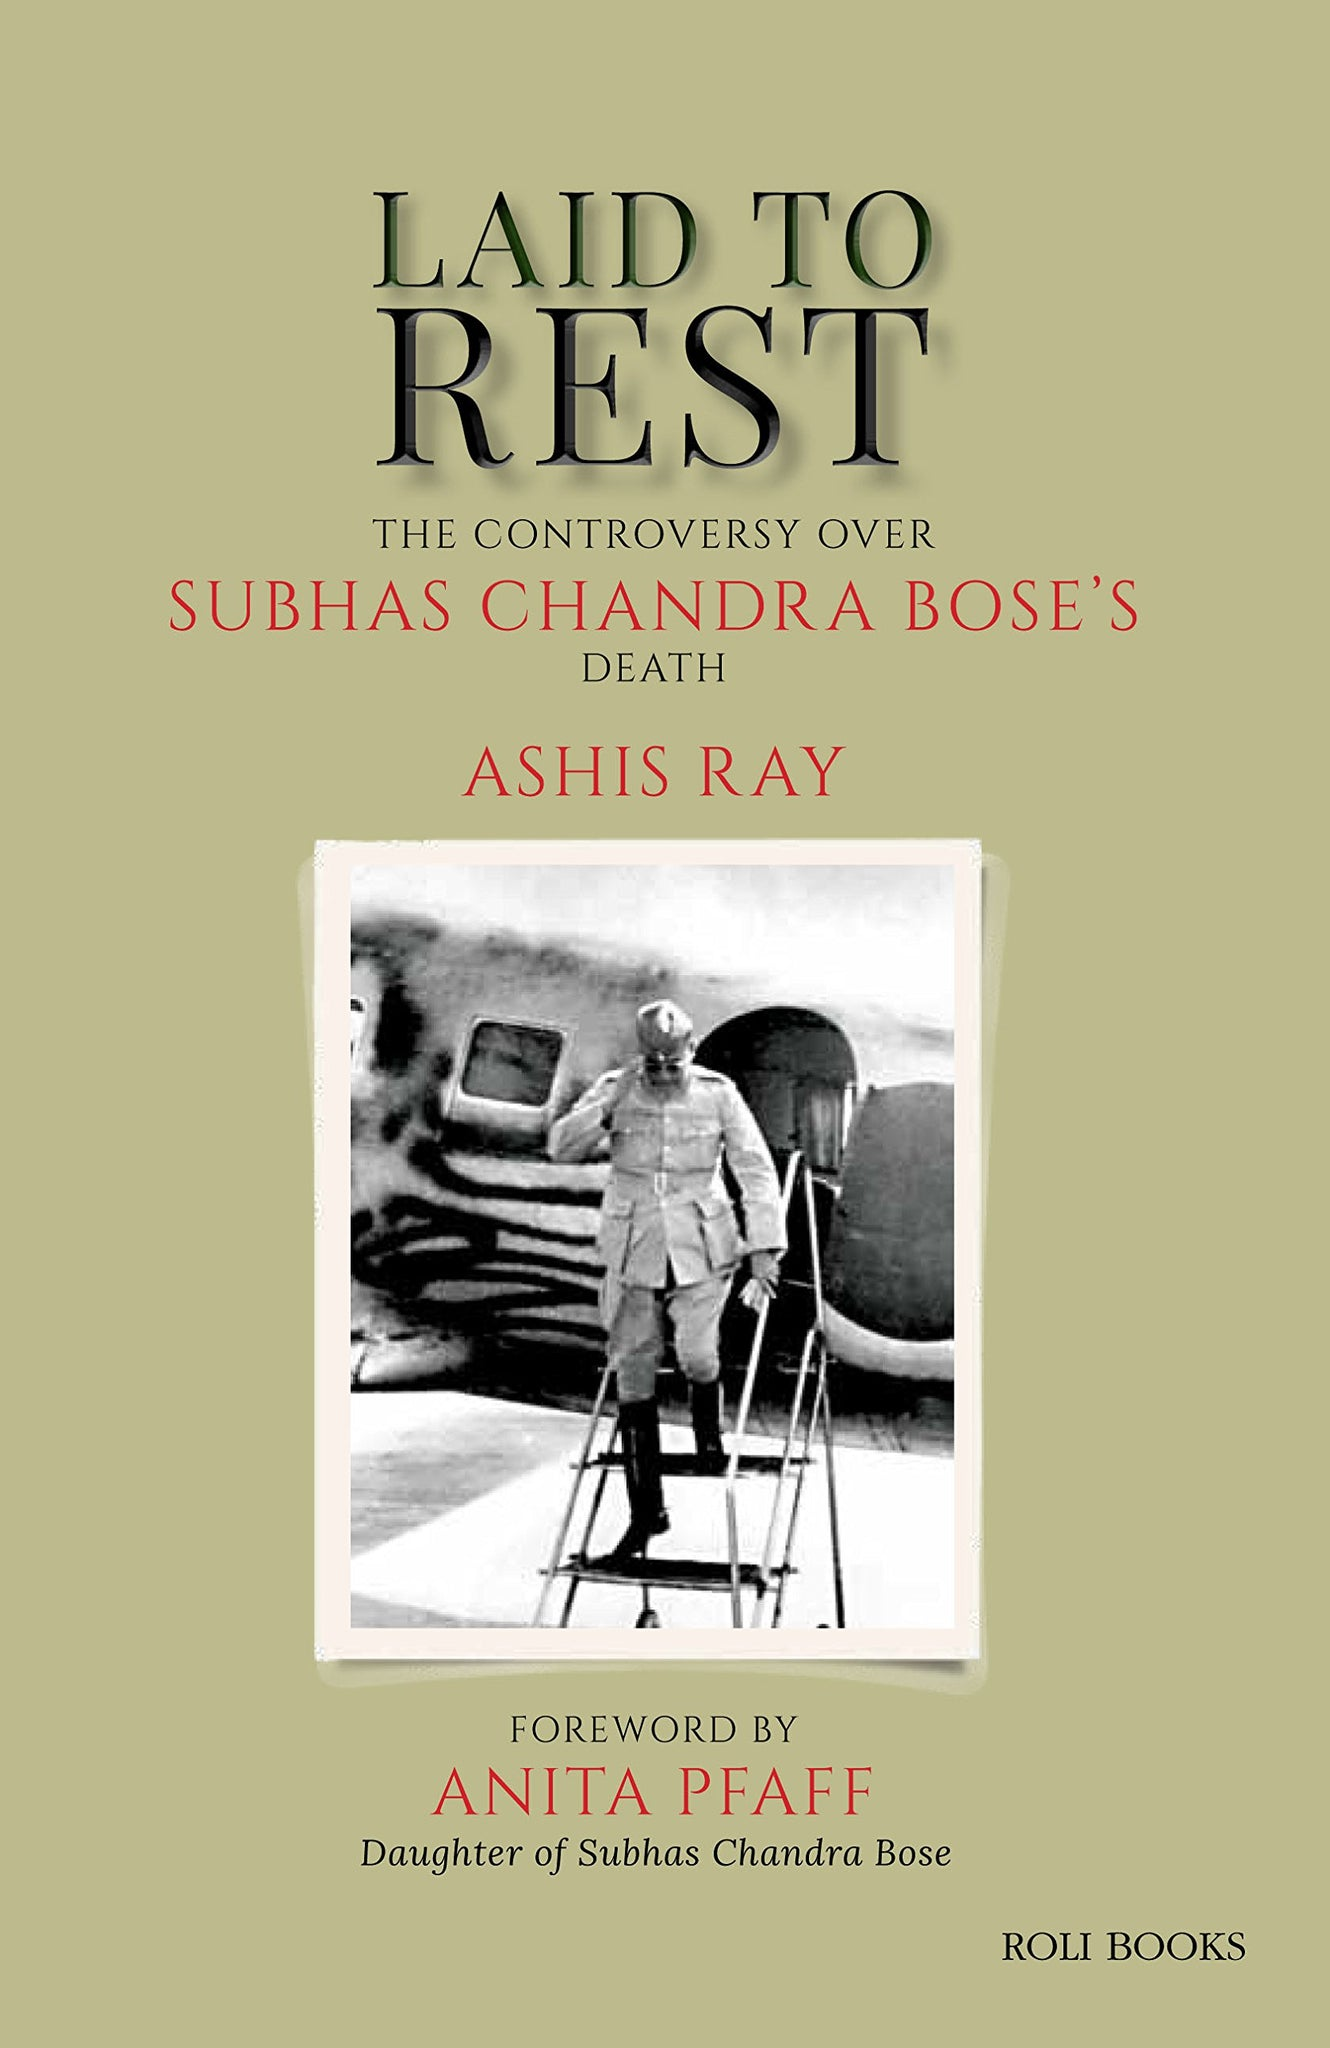 Laid To Rest: The Controversy Over Subhas Chandra